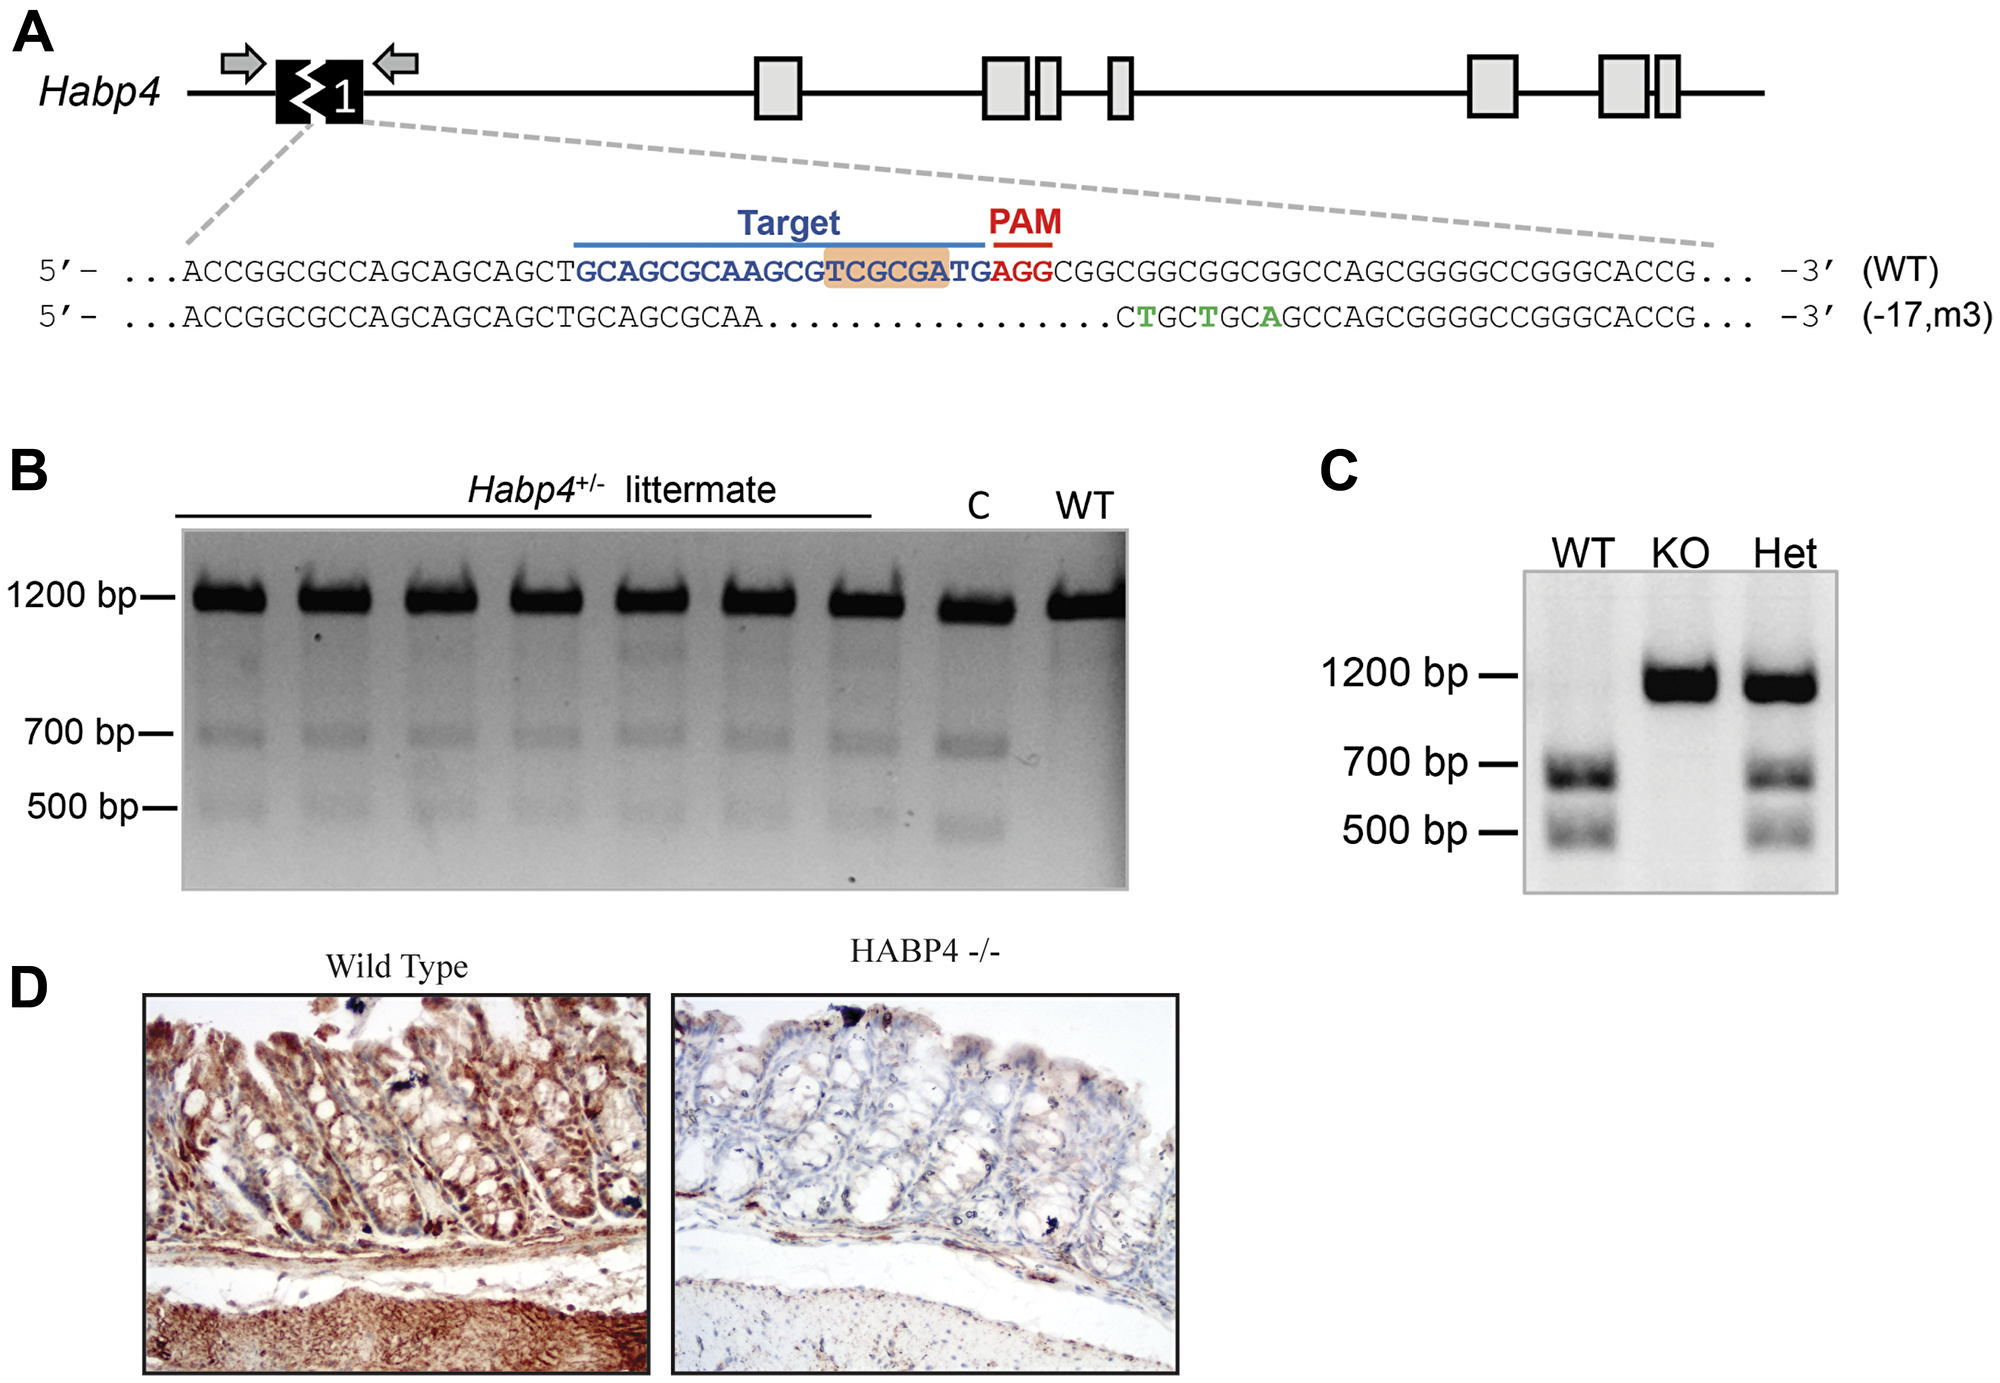 Generation of HABP4 knockout mice.